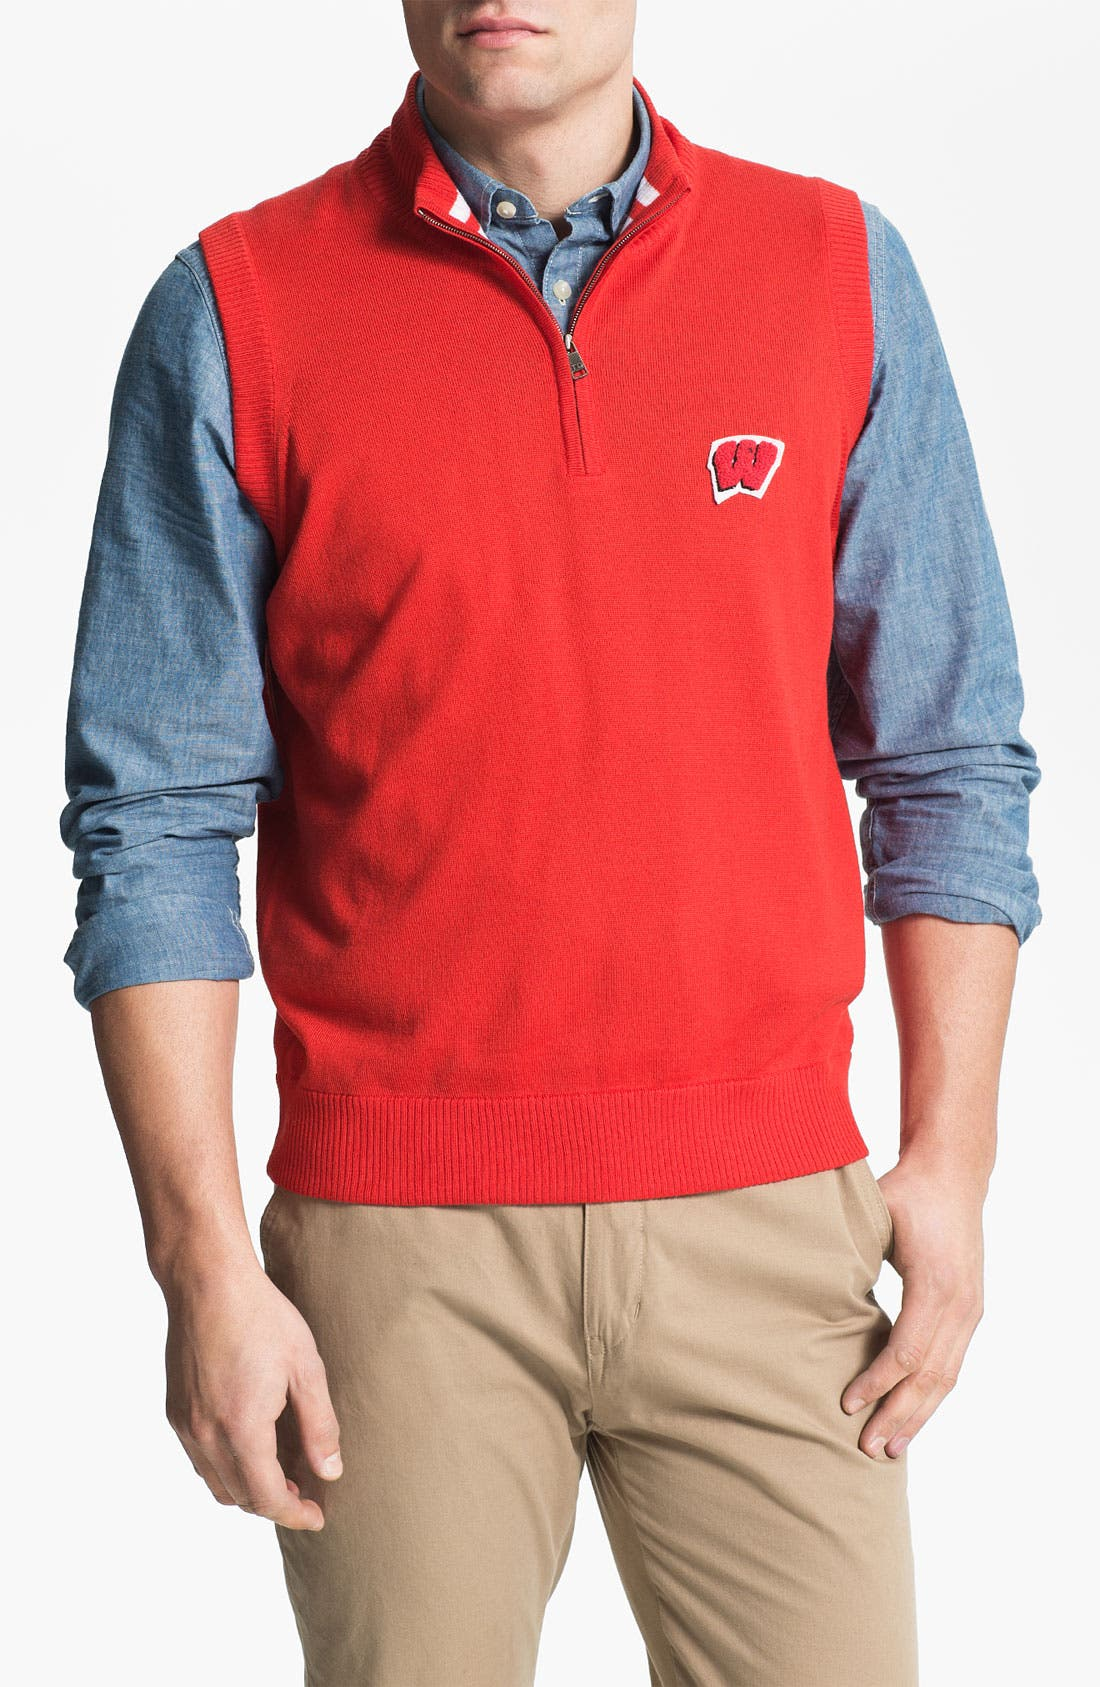 Alternate Image 1 Selected - WISCONSIN 1/4 ZIP SWEATER VEST